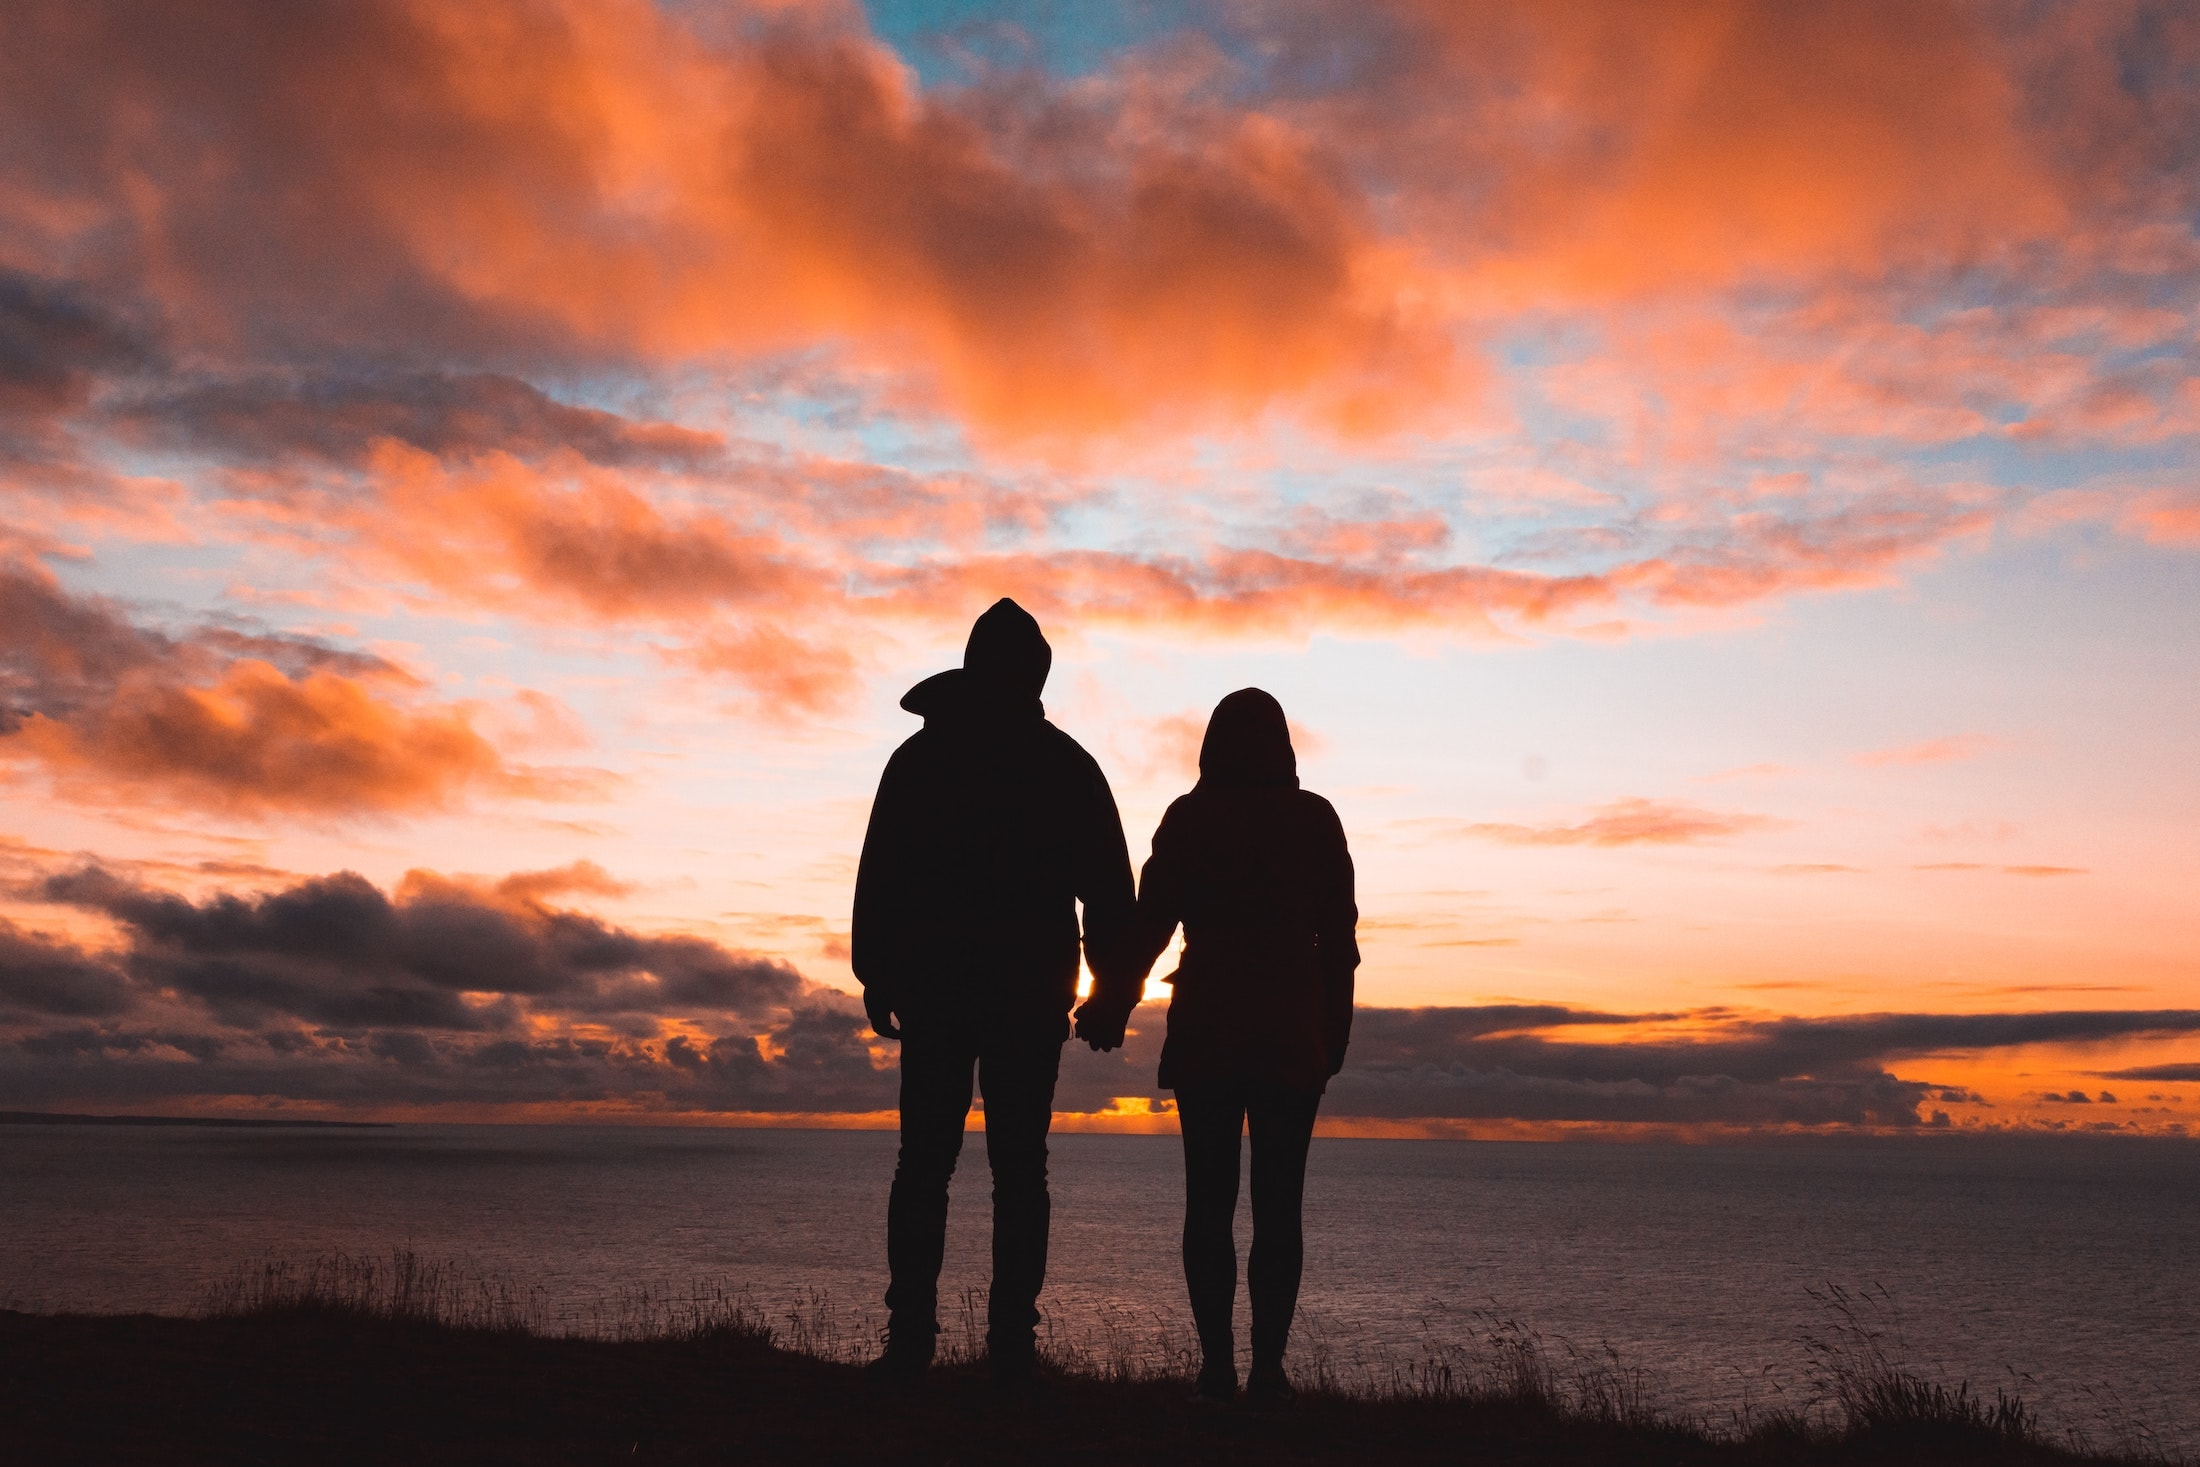 Silhouetted couple holding hands in front of a sunset over water.